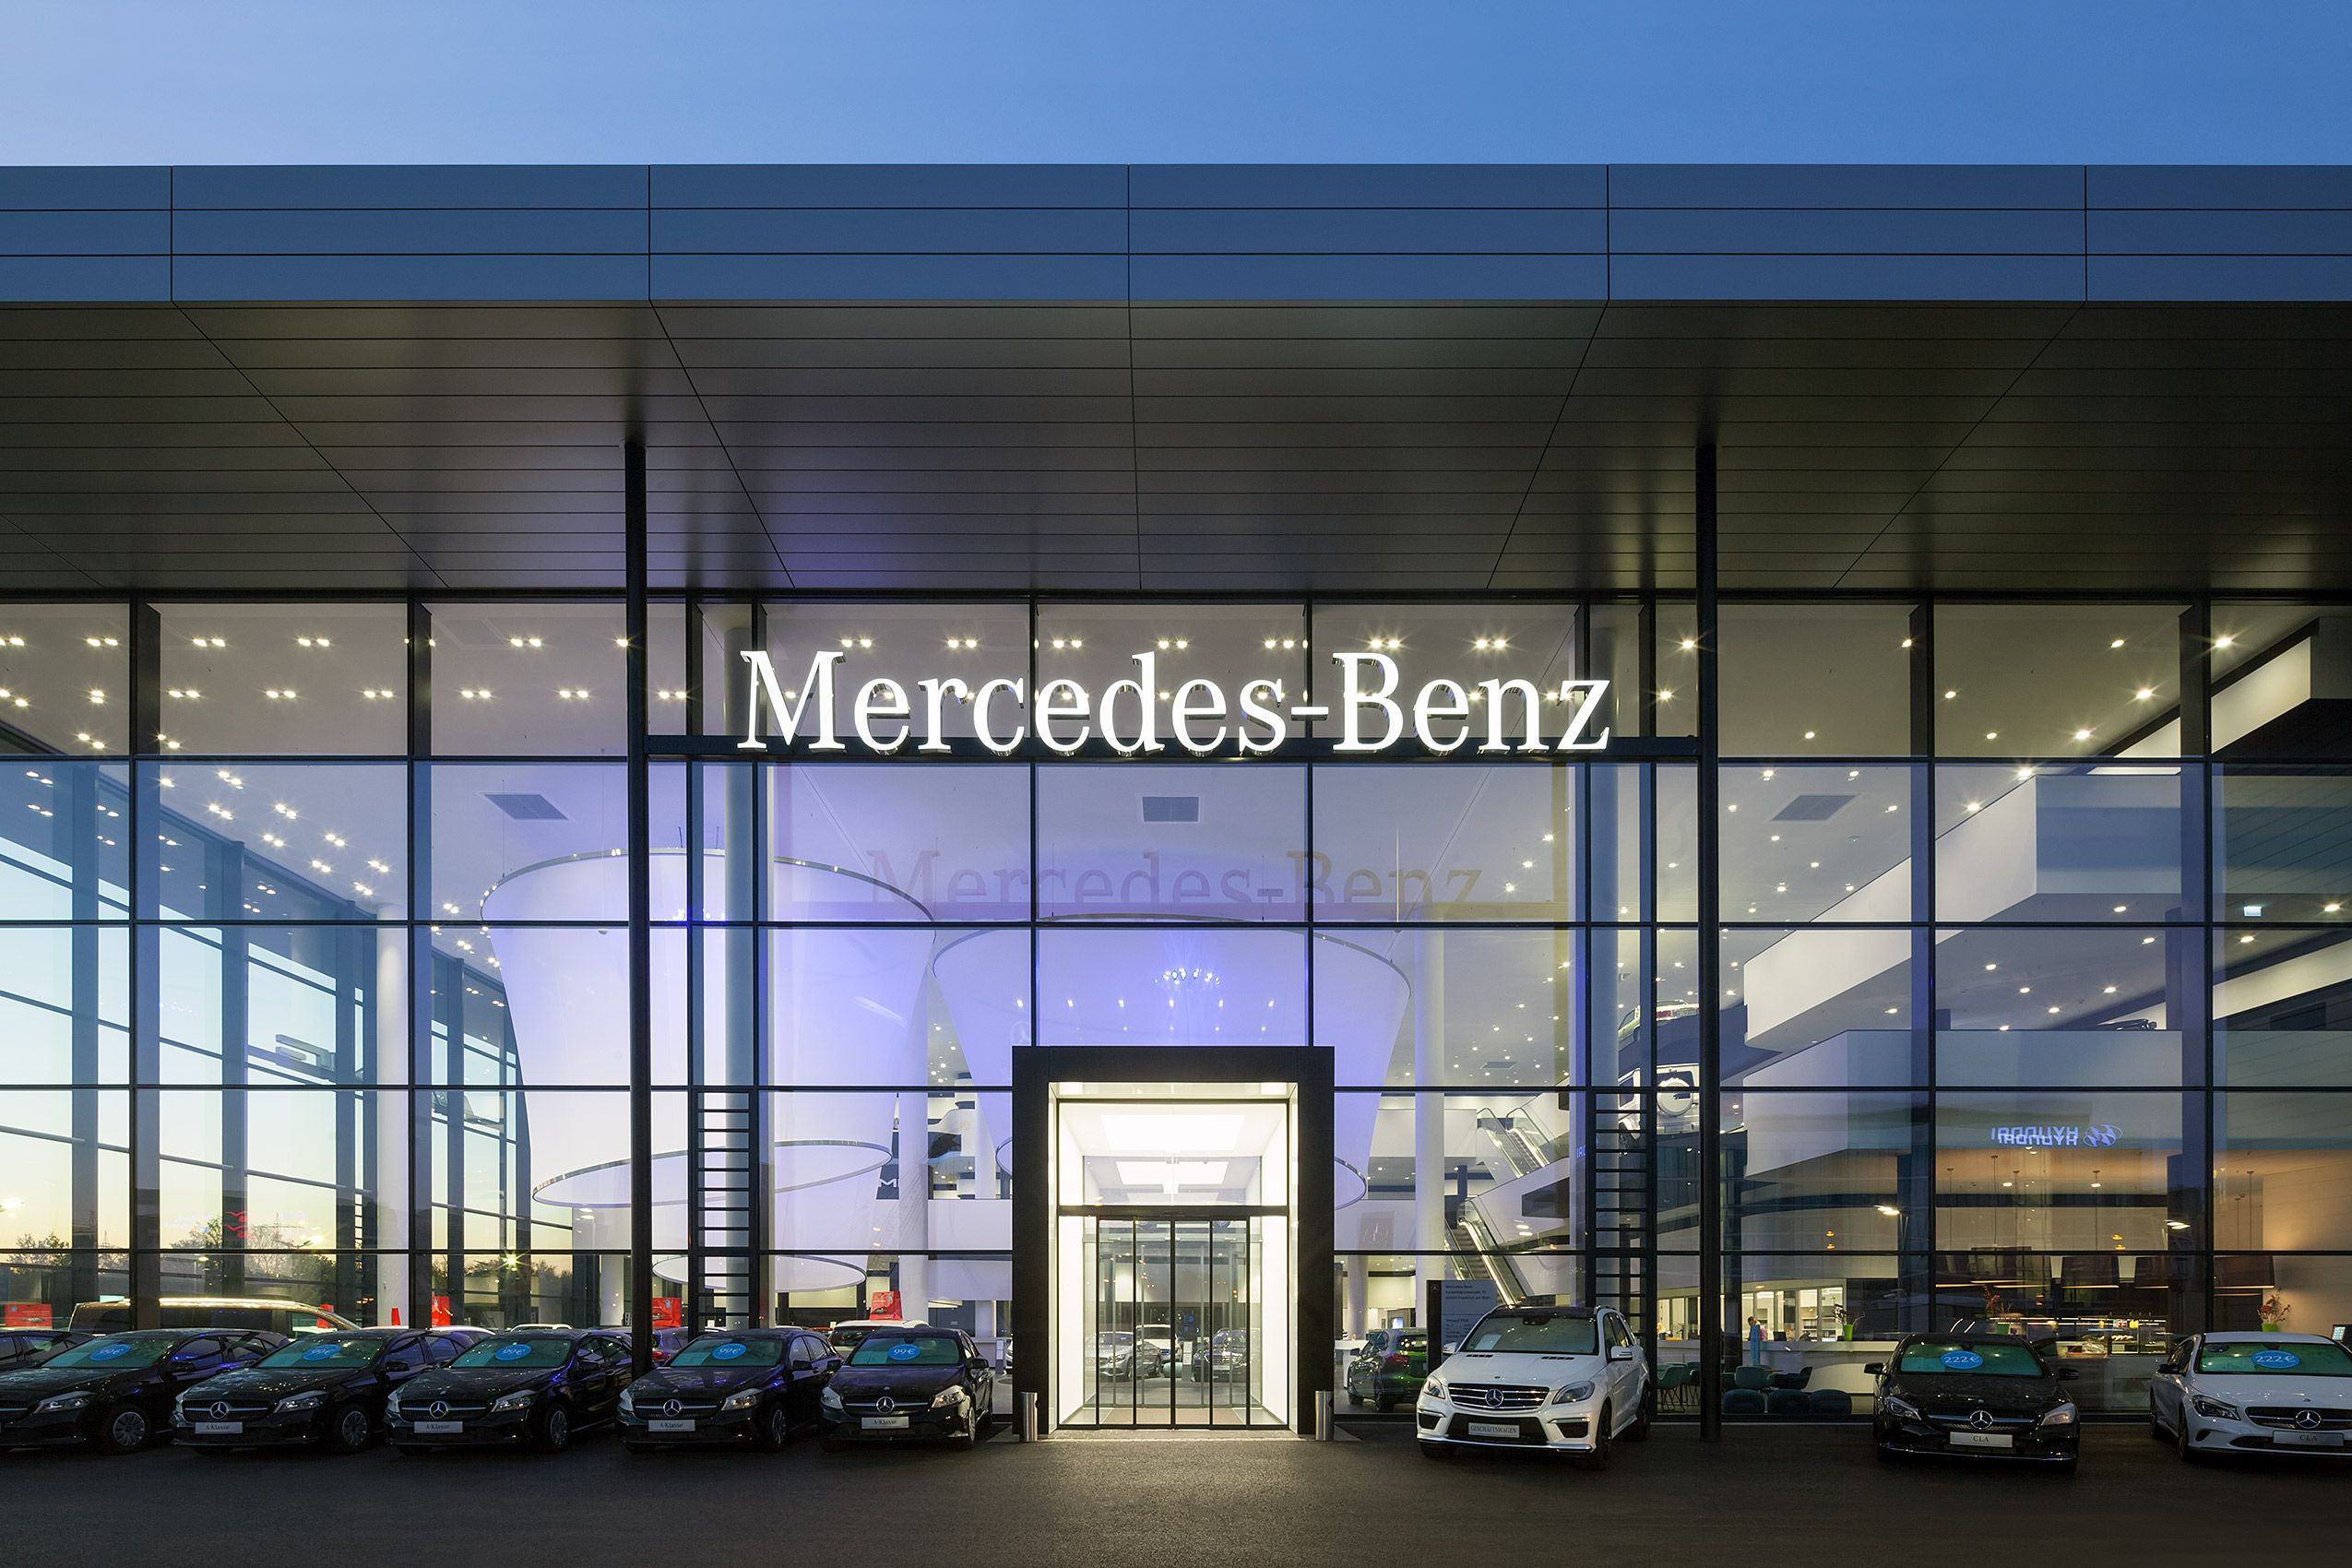 Mercedes-Benz Frankfurt, Frankfurt am Main 2016